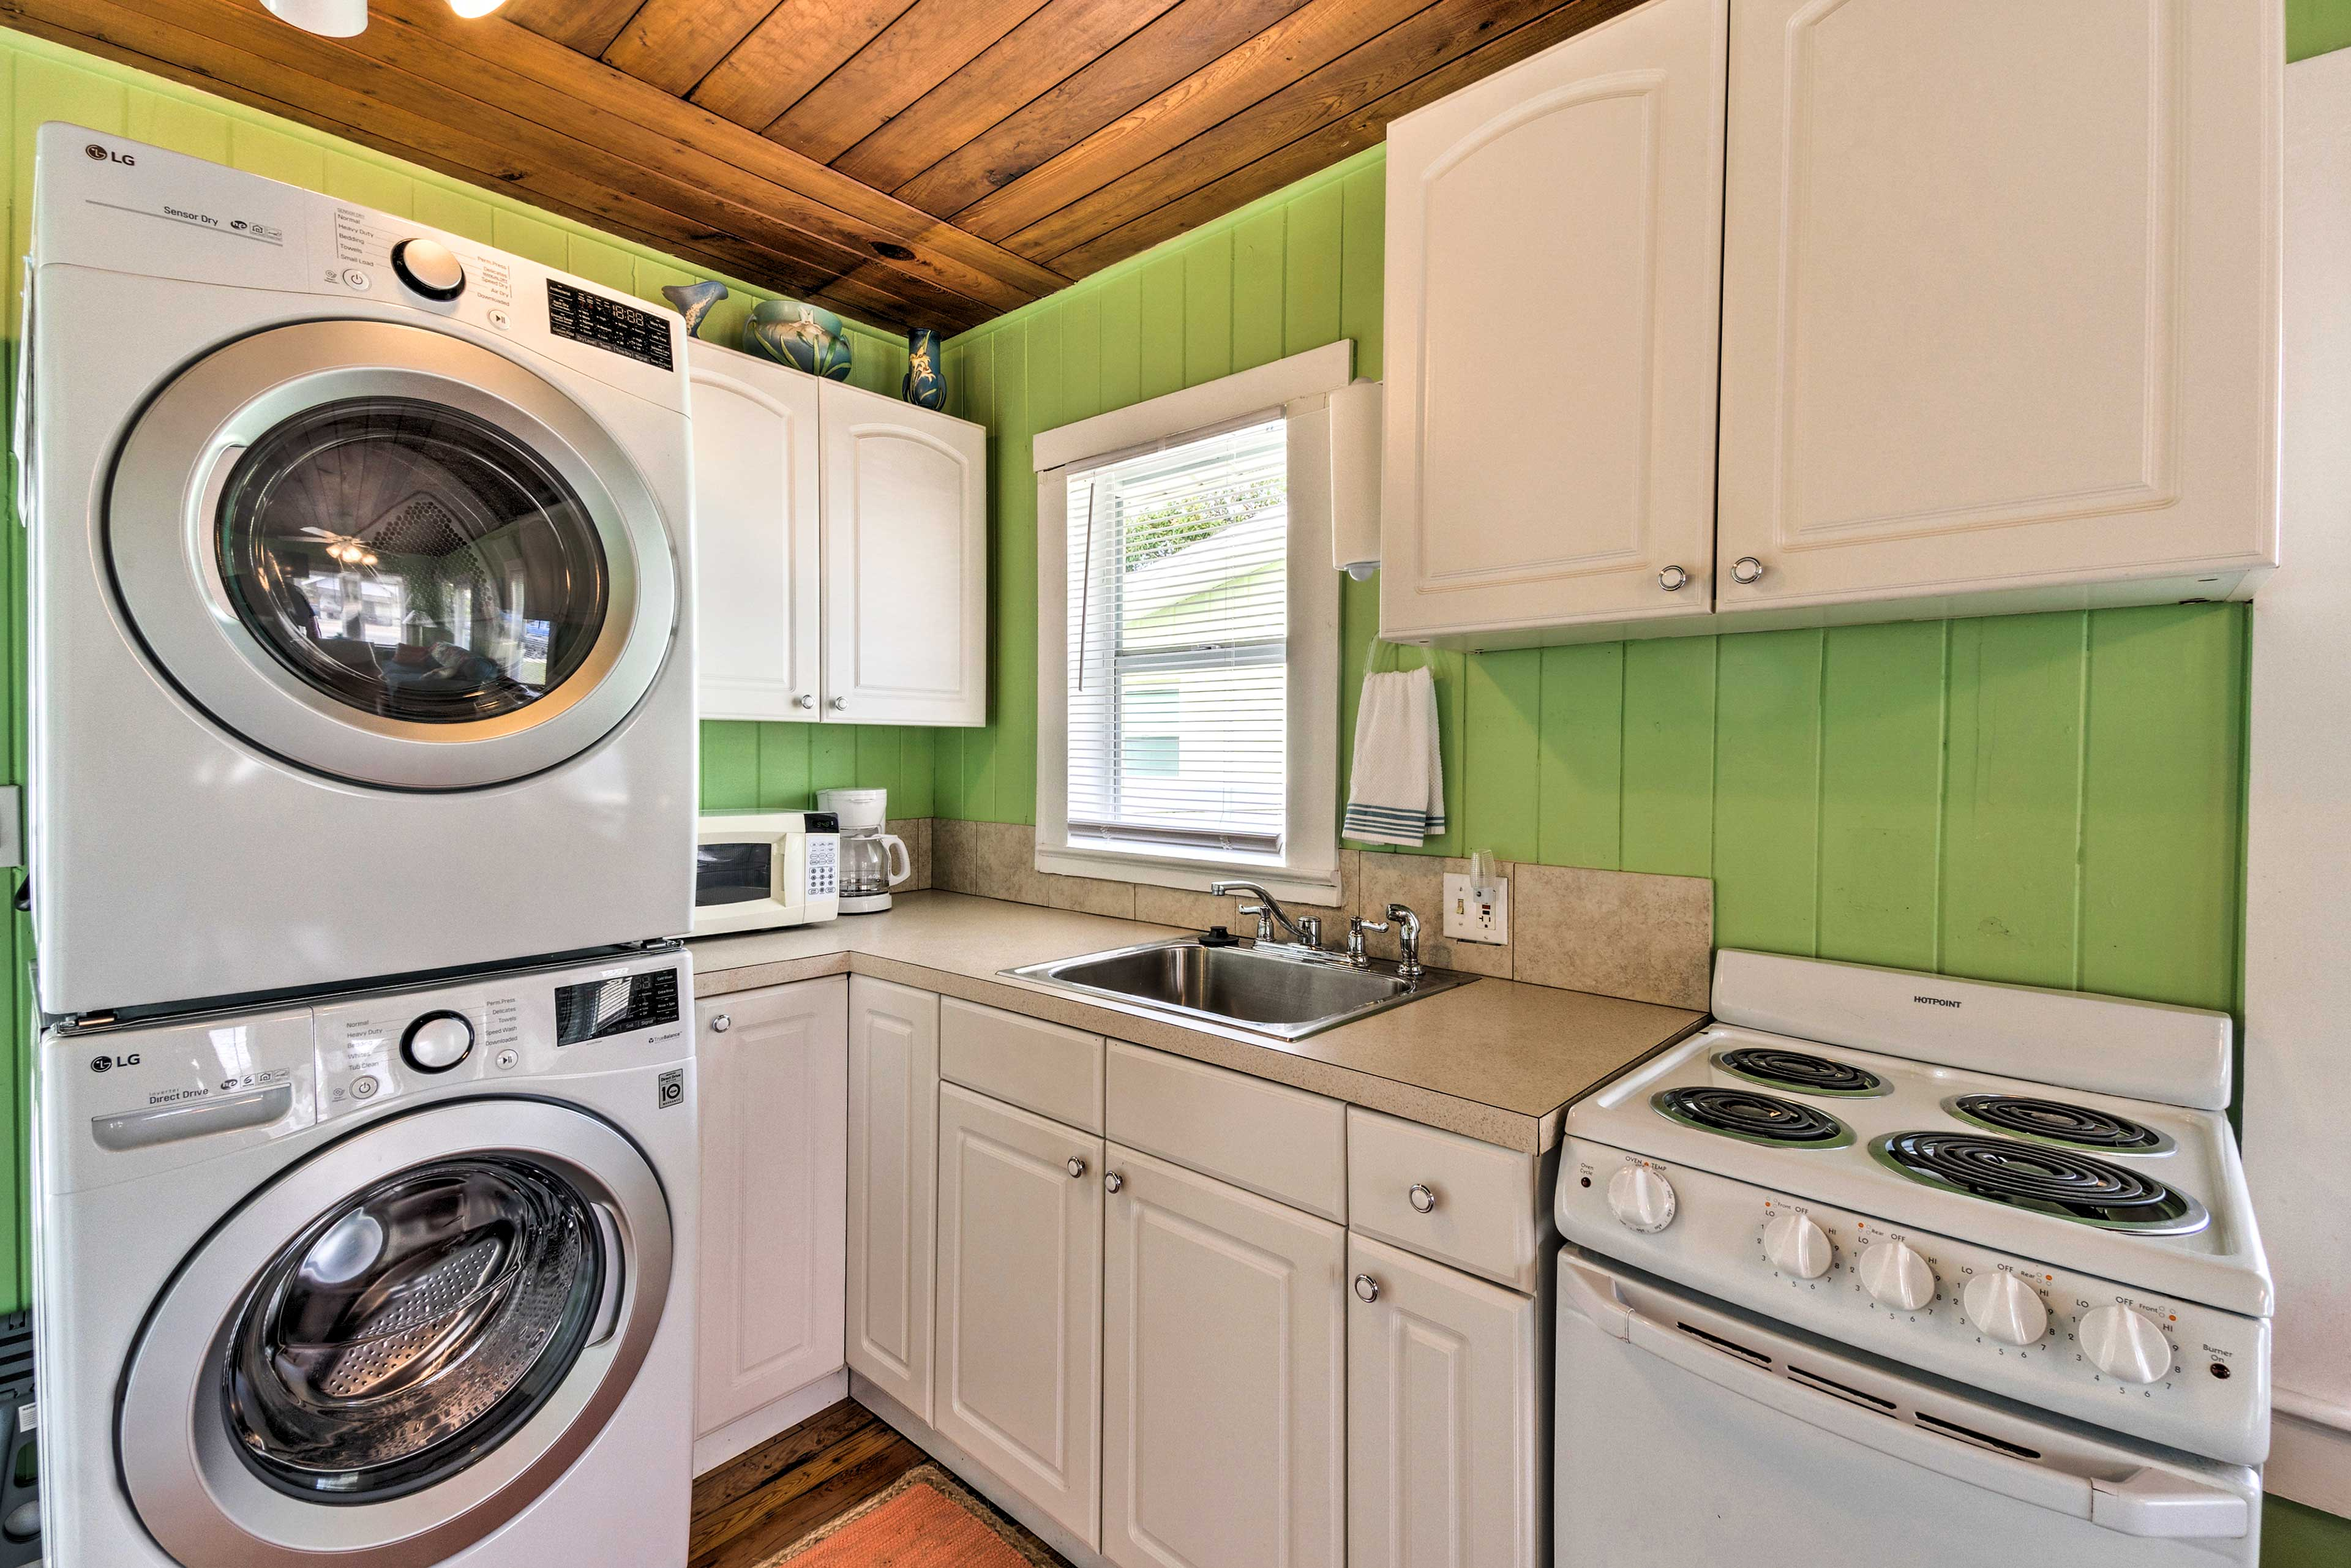 Throw in your laundry at the same time as you cook.